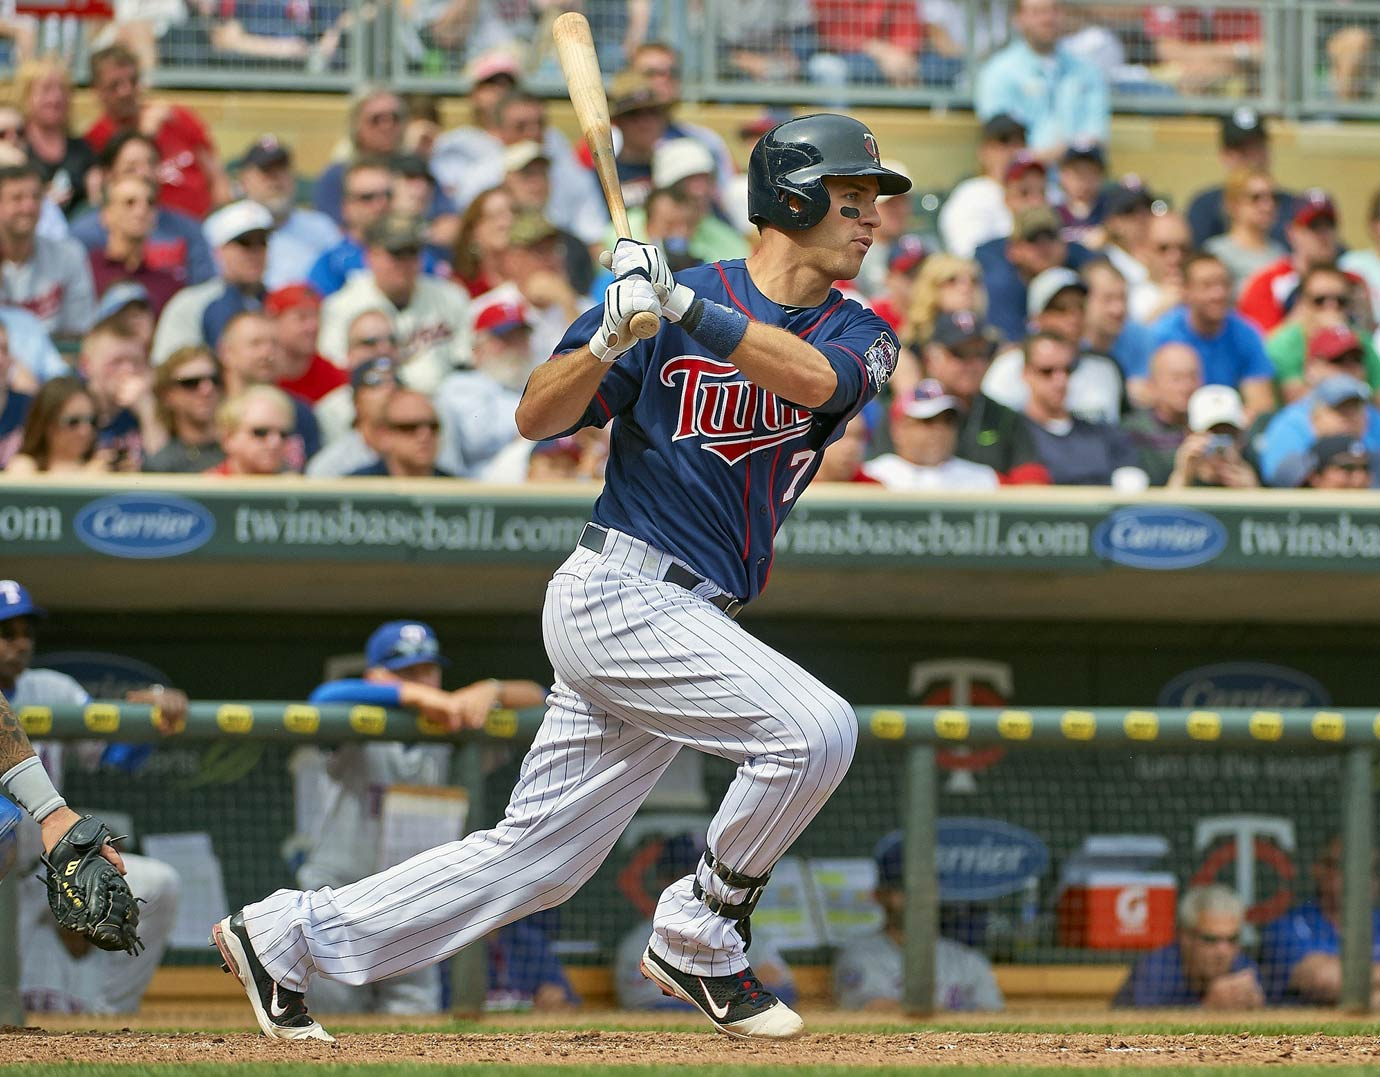 Arguably the best high-school player in the country, Mauer was a no-brainer at No. 1 for the Twins. Since debuting for Minnesota in 2004, Mauer has won an AL MVP award (2009) and won the batting title three times, the first catcher ever to do so. The six-time All-Star was shifted to first base in 2014.